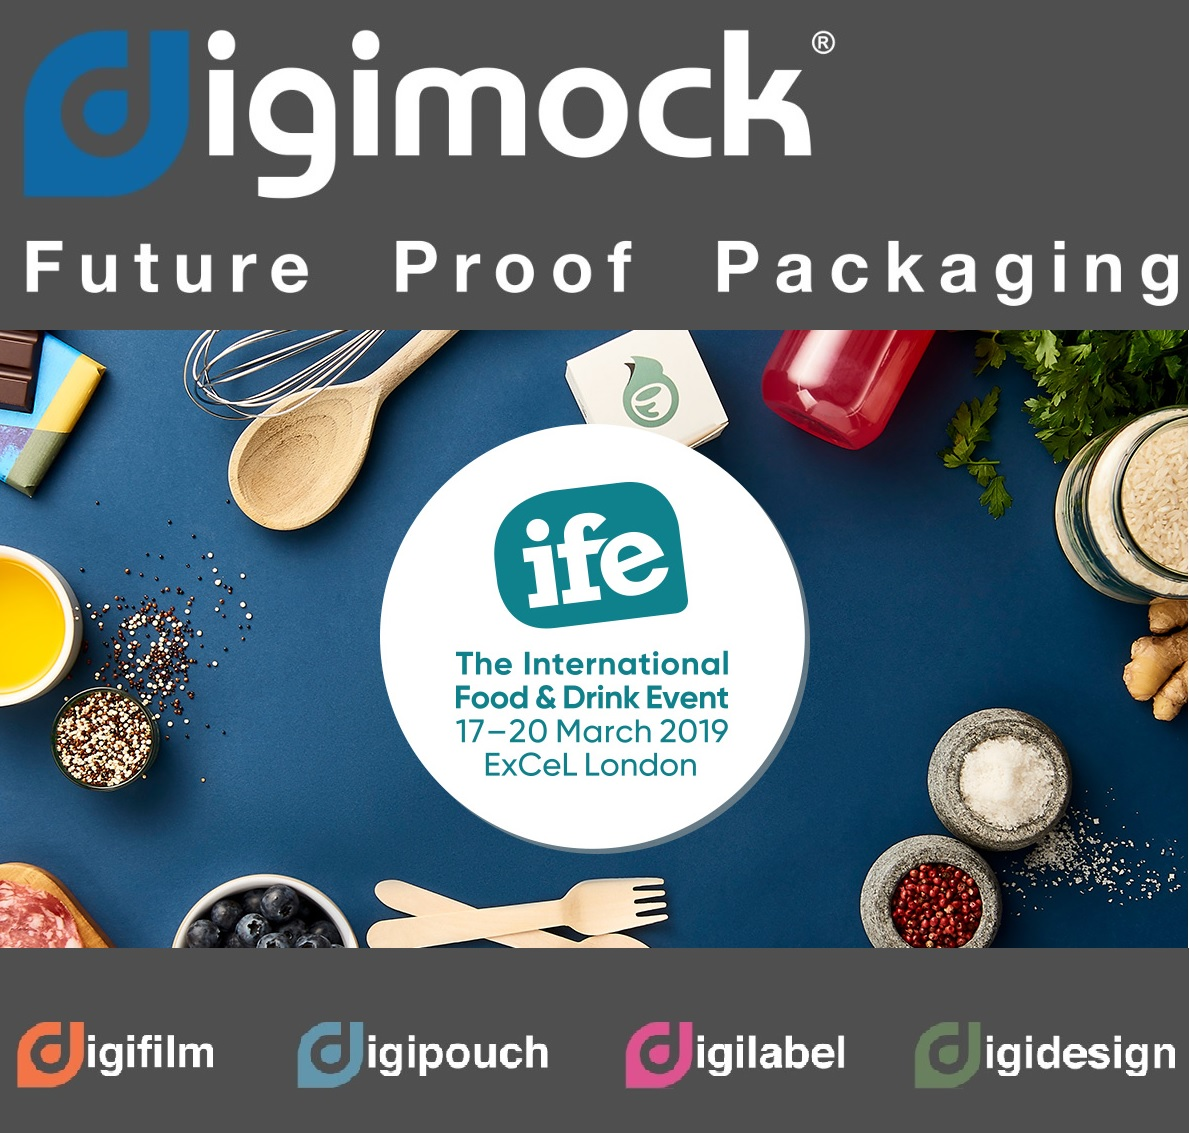 Exhibiting at IFE 2019